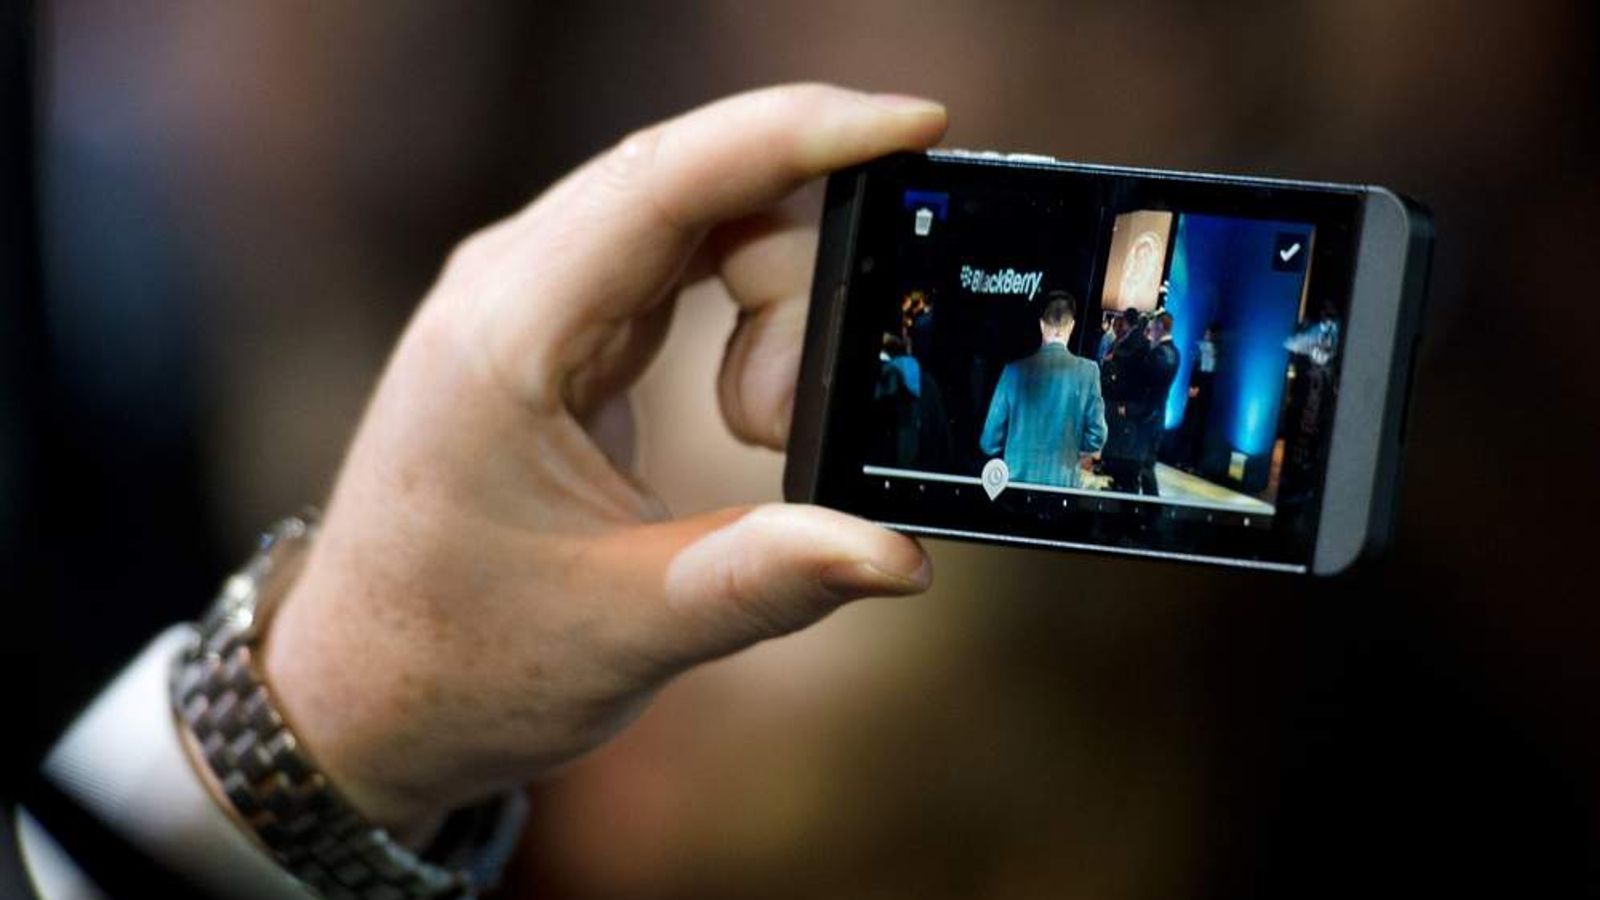 A member of the RIM team poses with one of the new touchscreen Z10 Blackberry devices